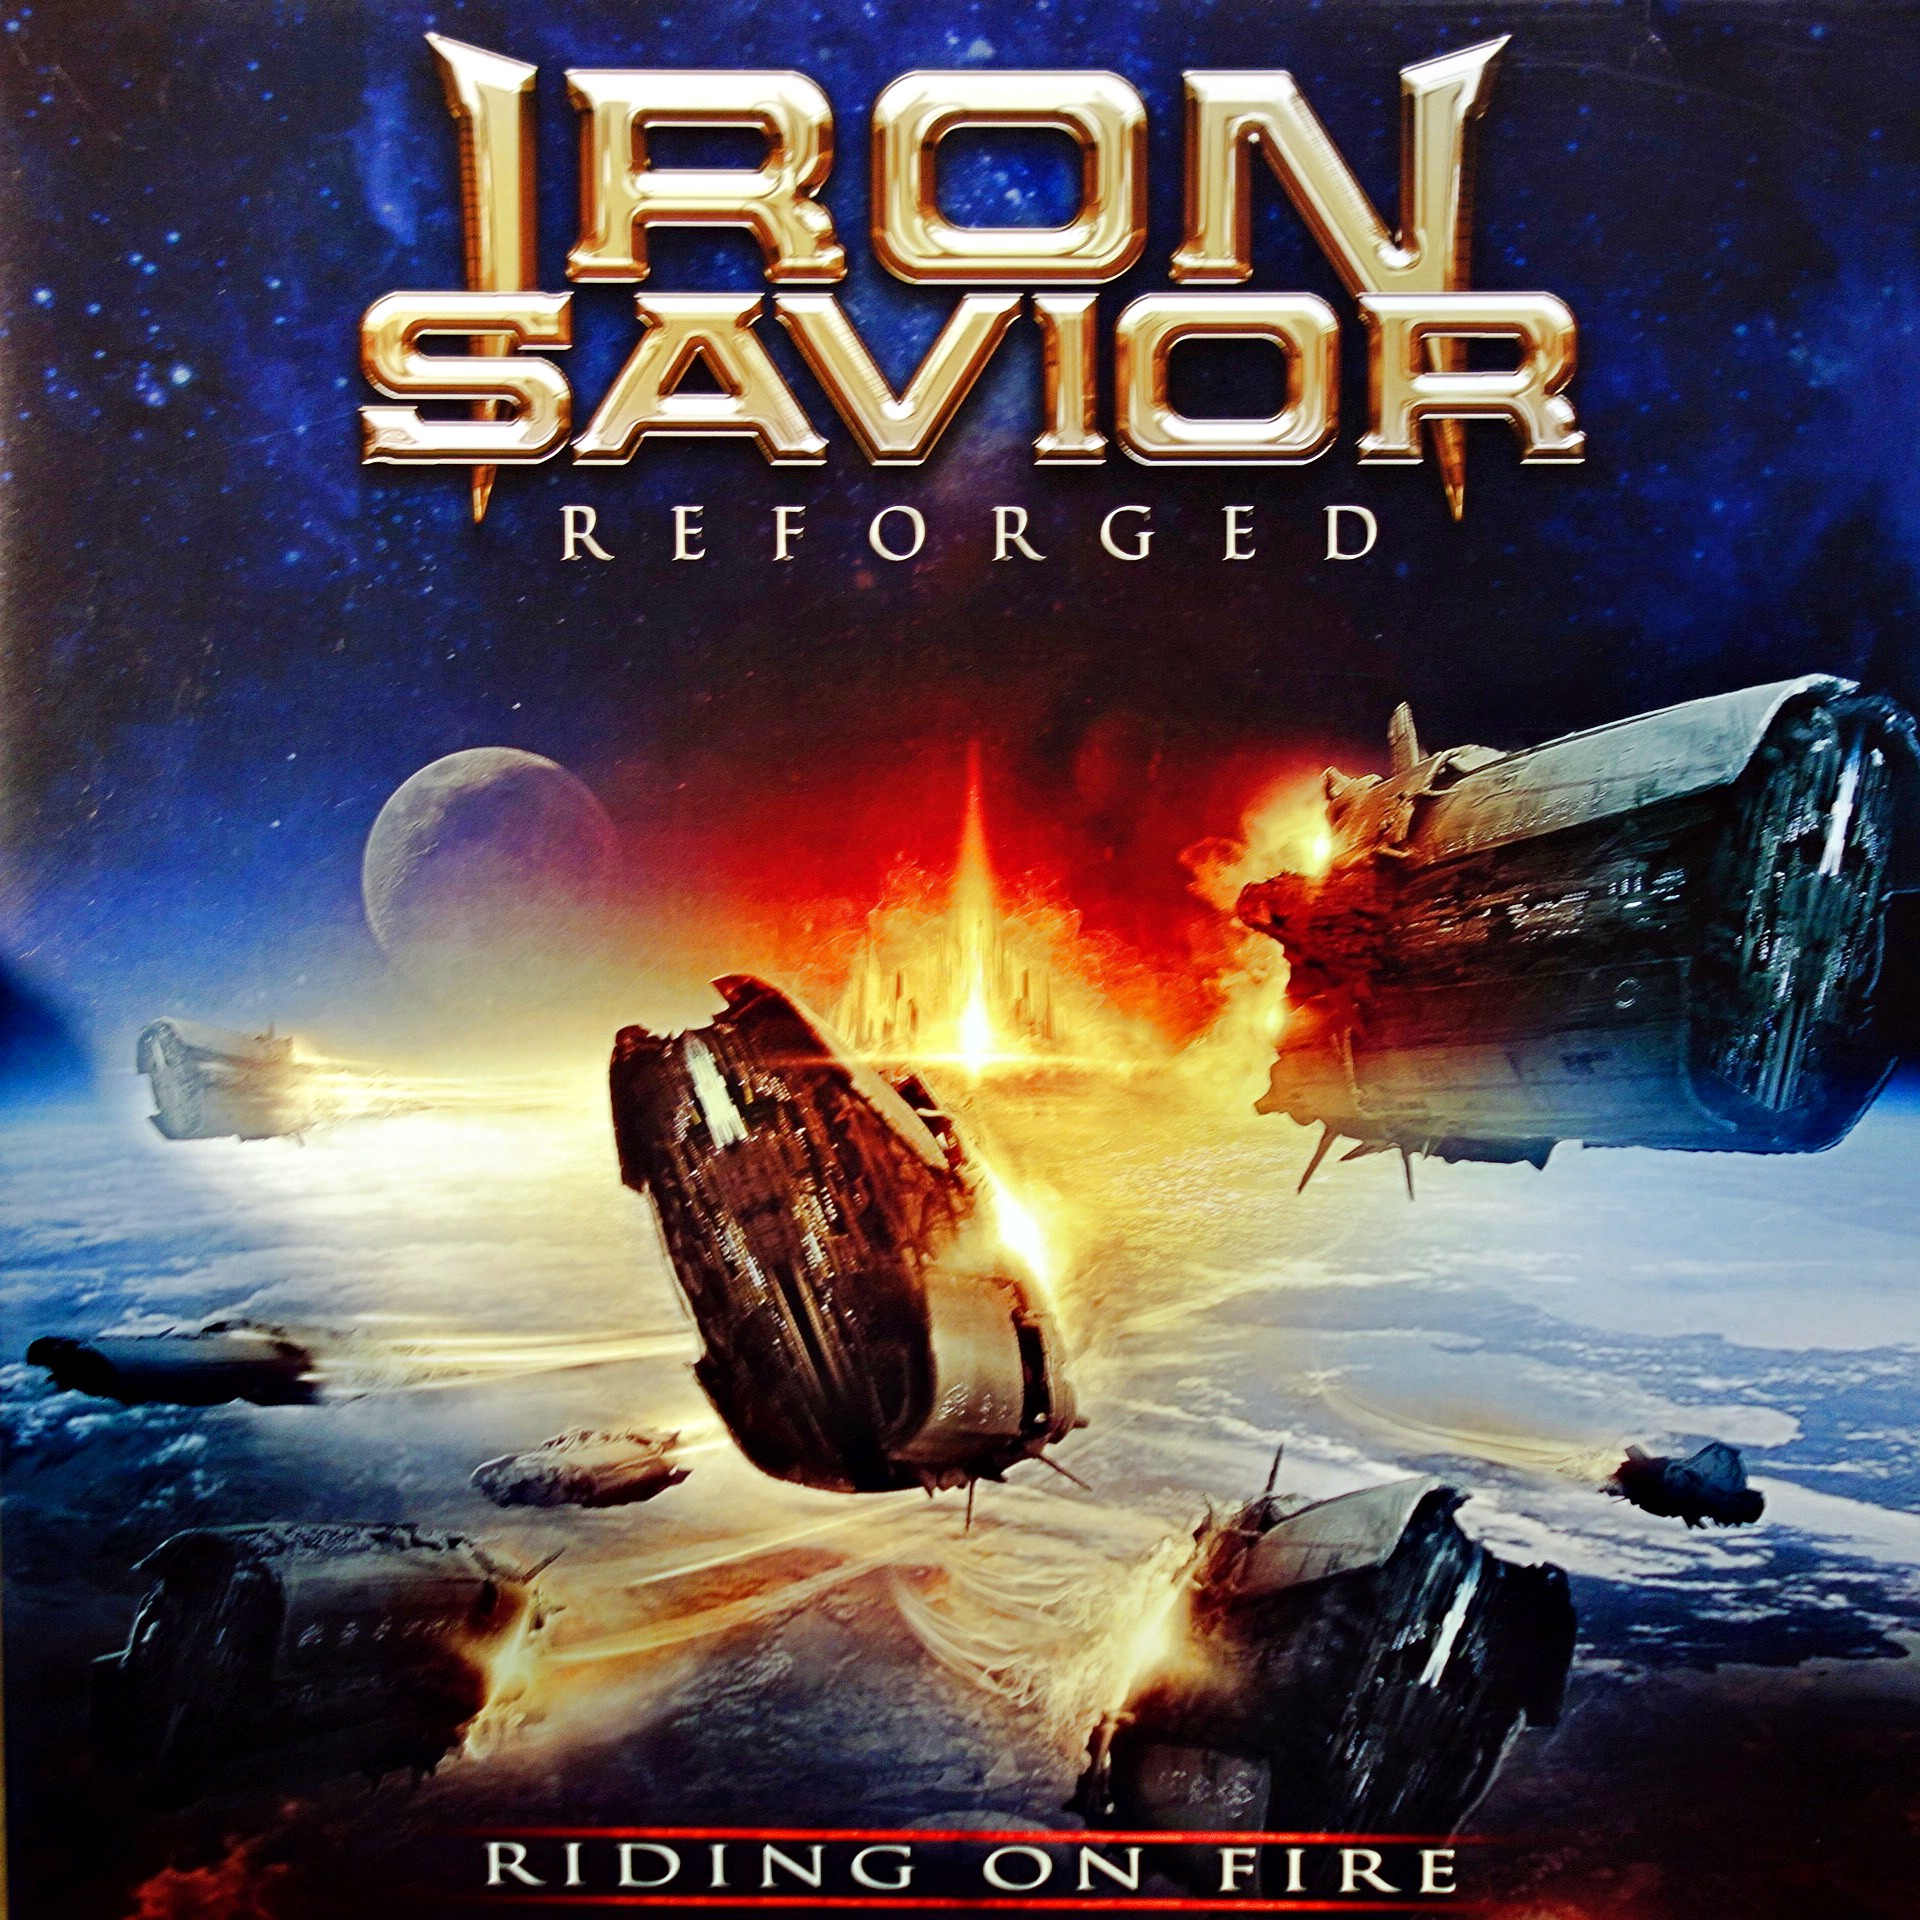 2xLP Iron Savior ‎– Reforged (Riding On Fire)